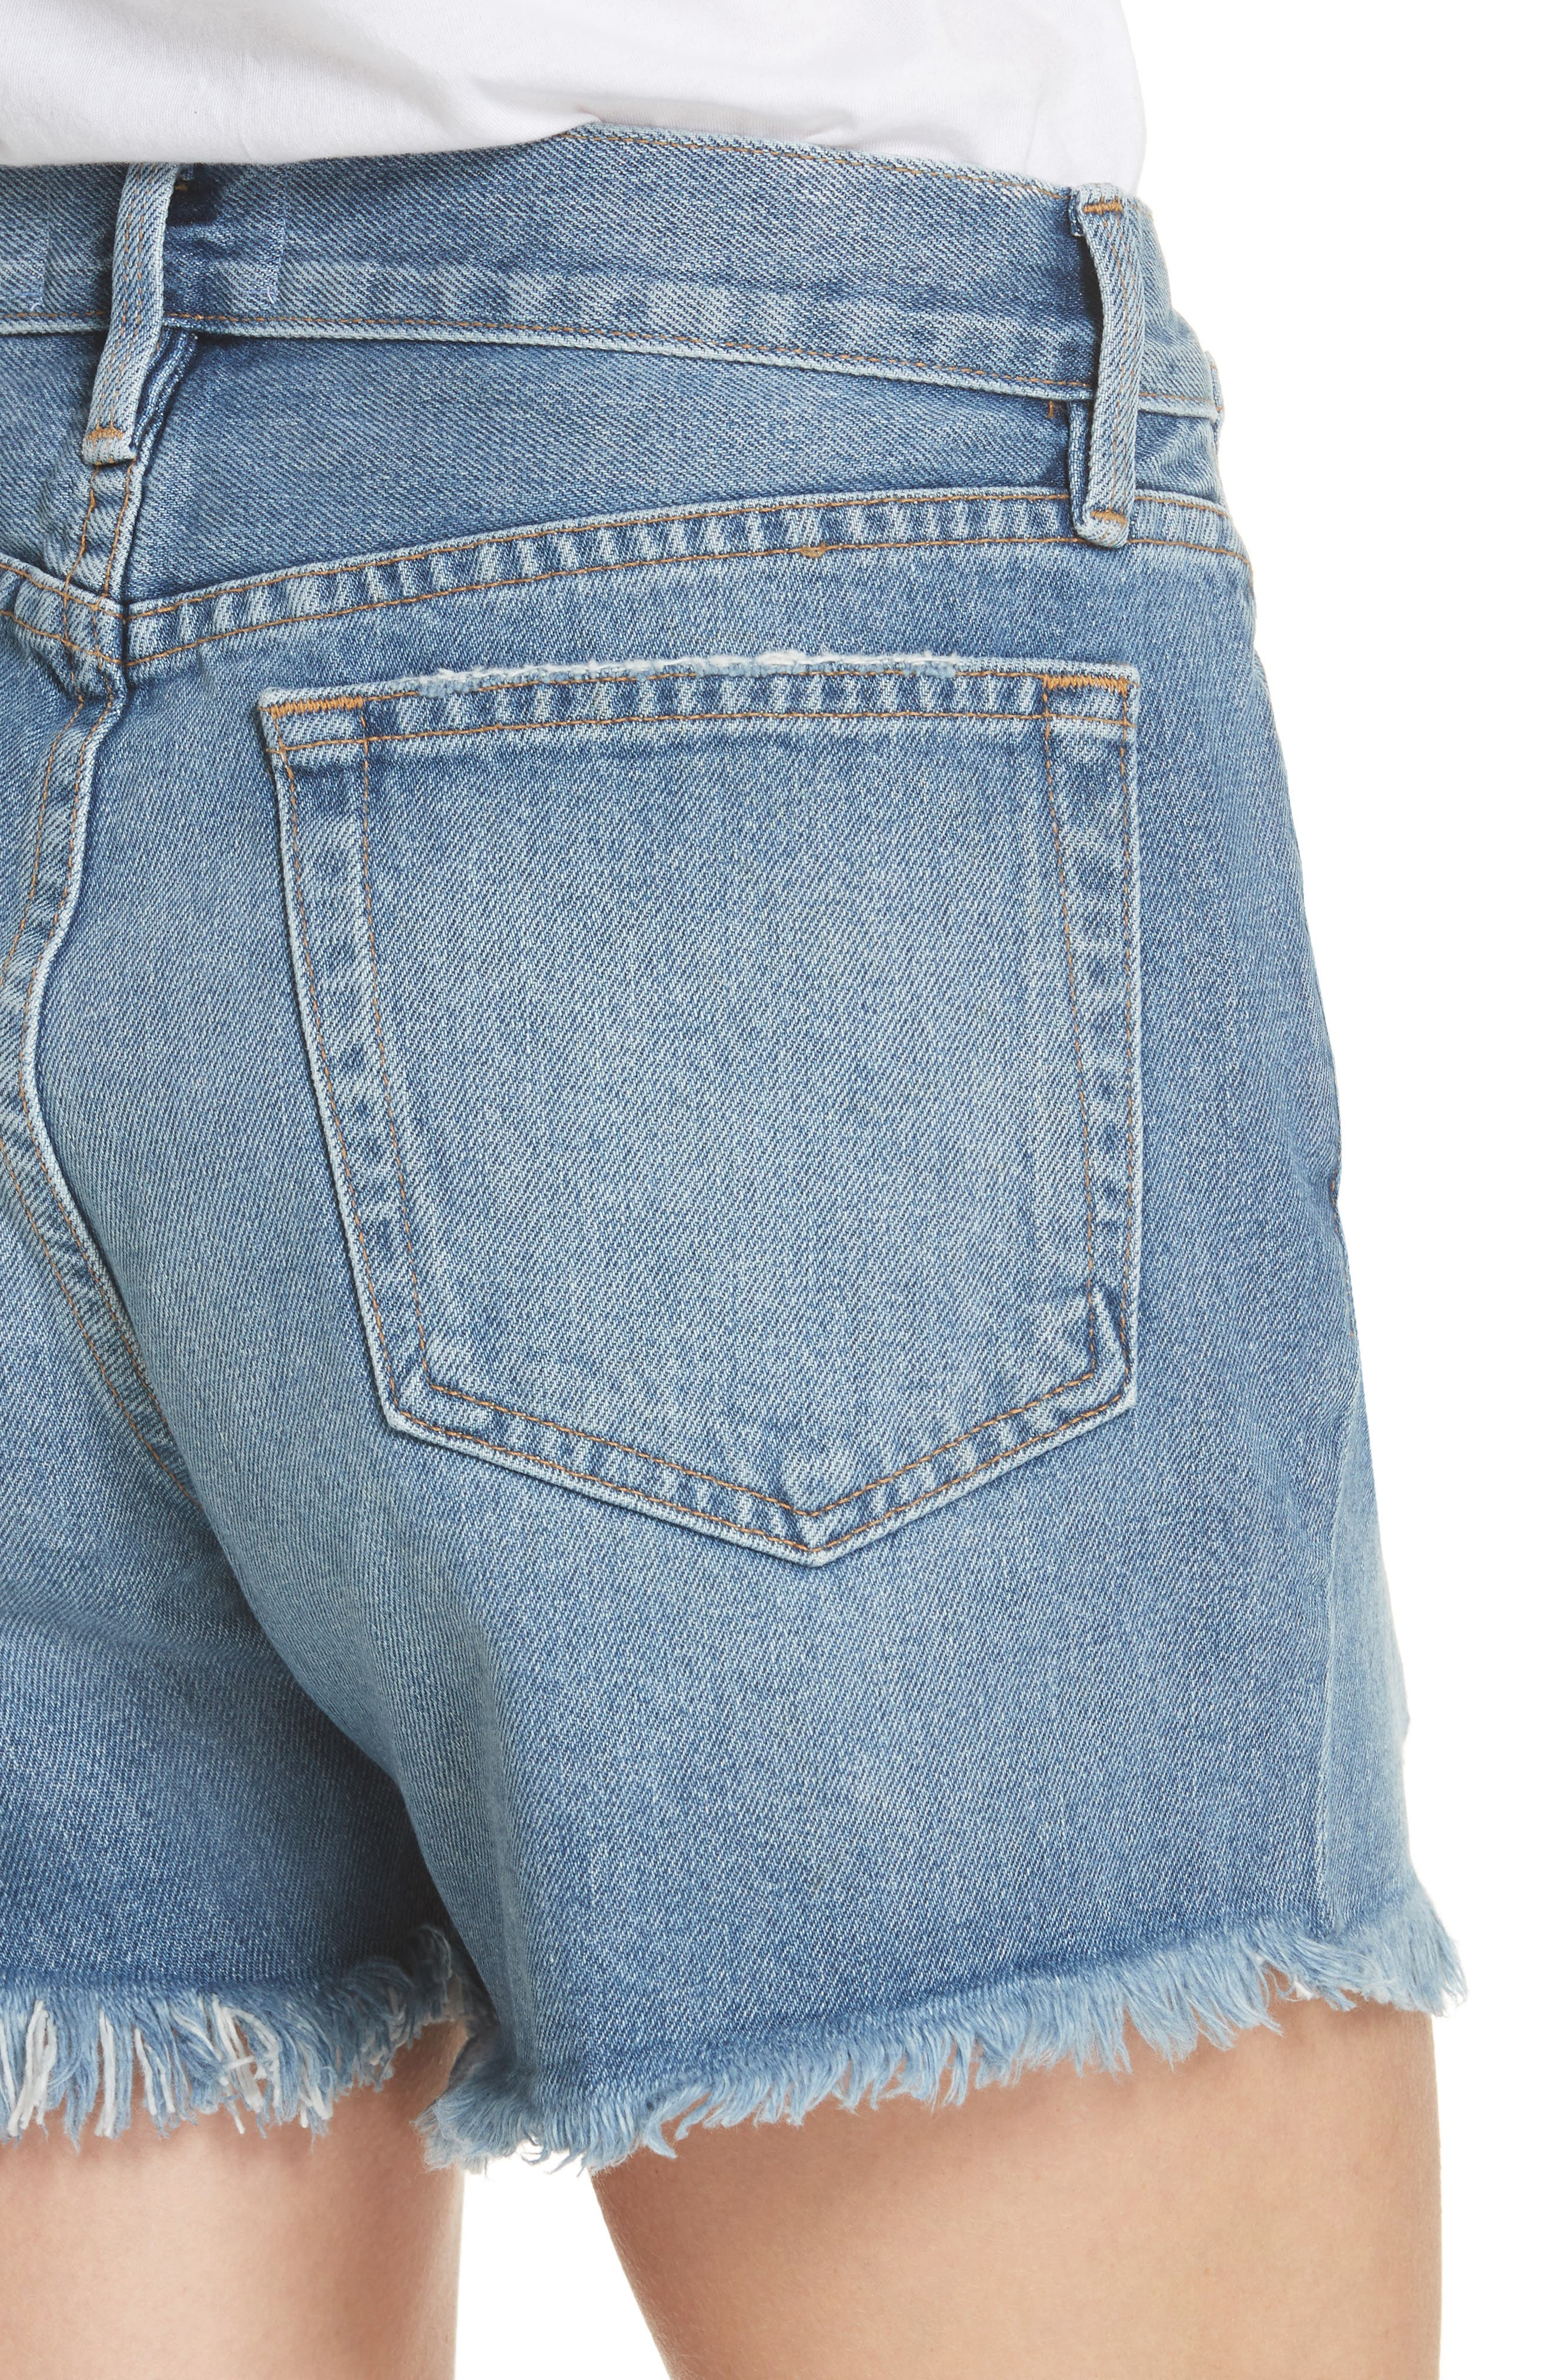 Le Stevie Denim Shorts,                             Alternate thumbnail 4, color,                             401